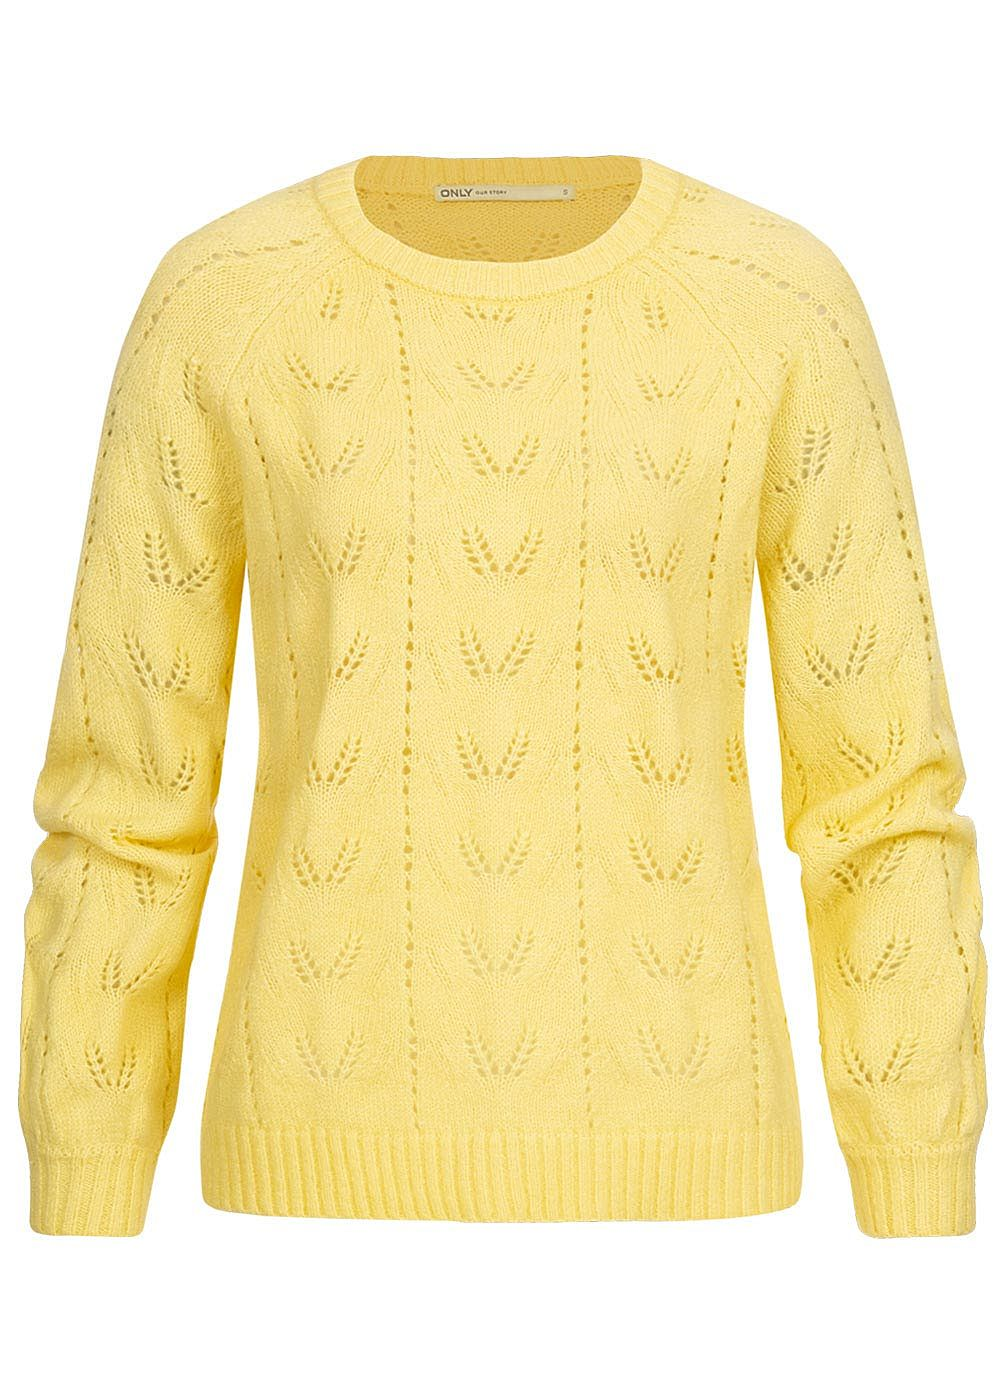 ONLY Damen Puffärmel Strickpullover pineapple gelb - Art.-Nr.: 19104796